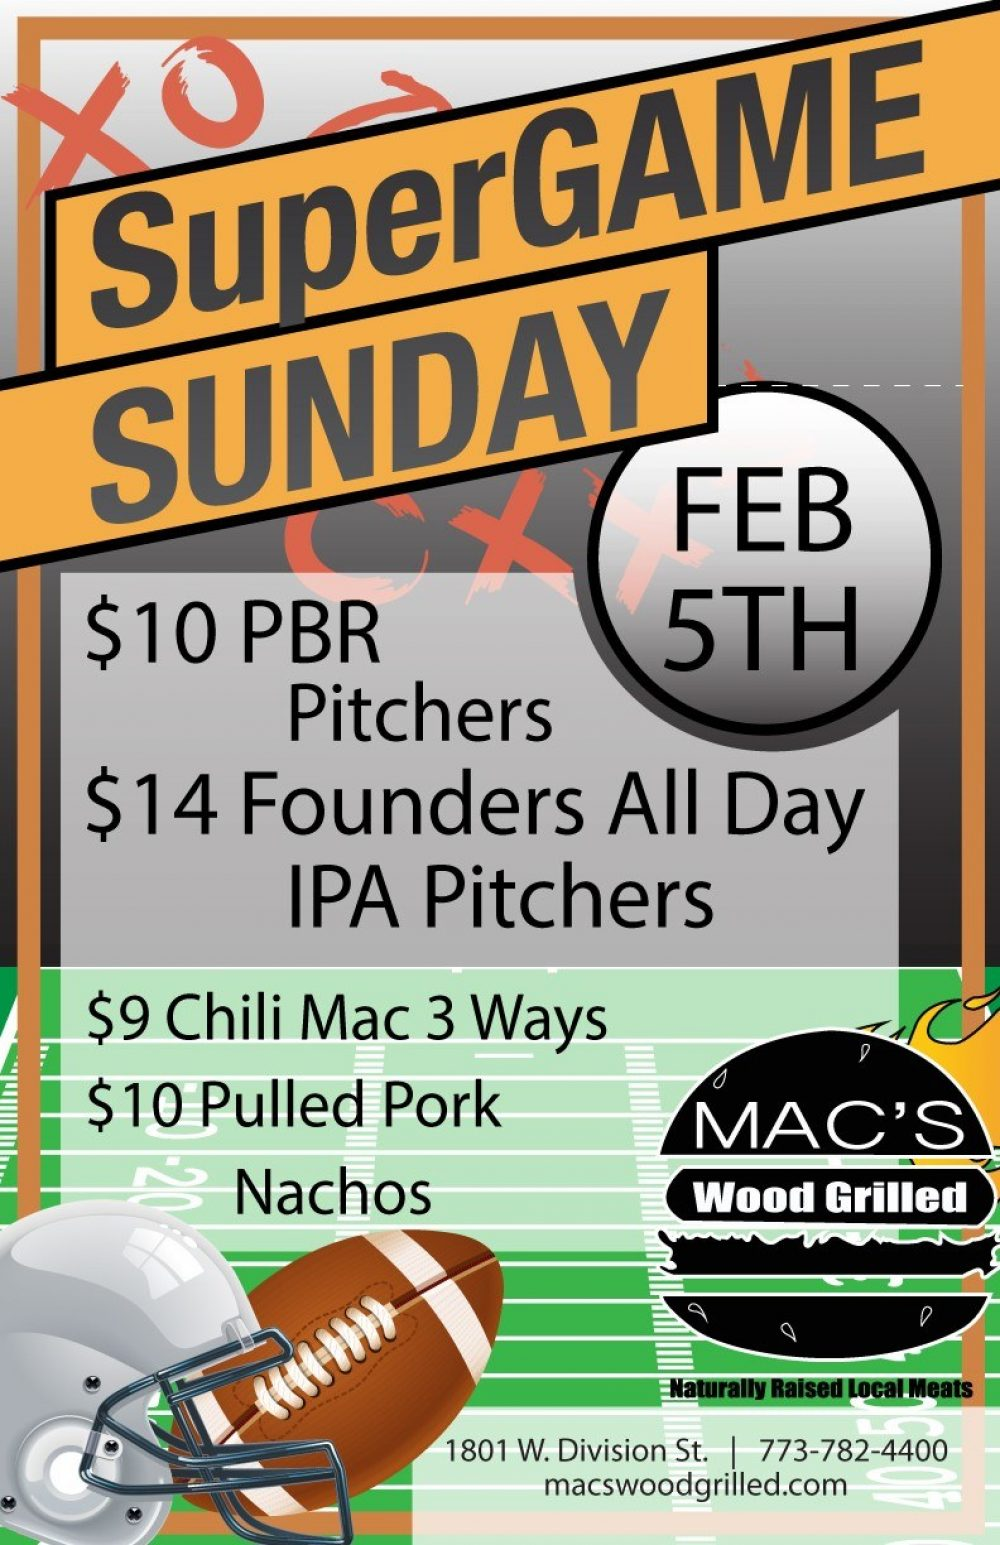 Mac's Wood Grilled Super Game Sunday